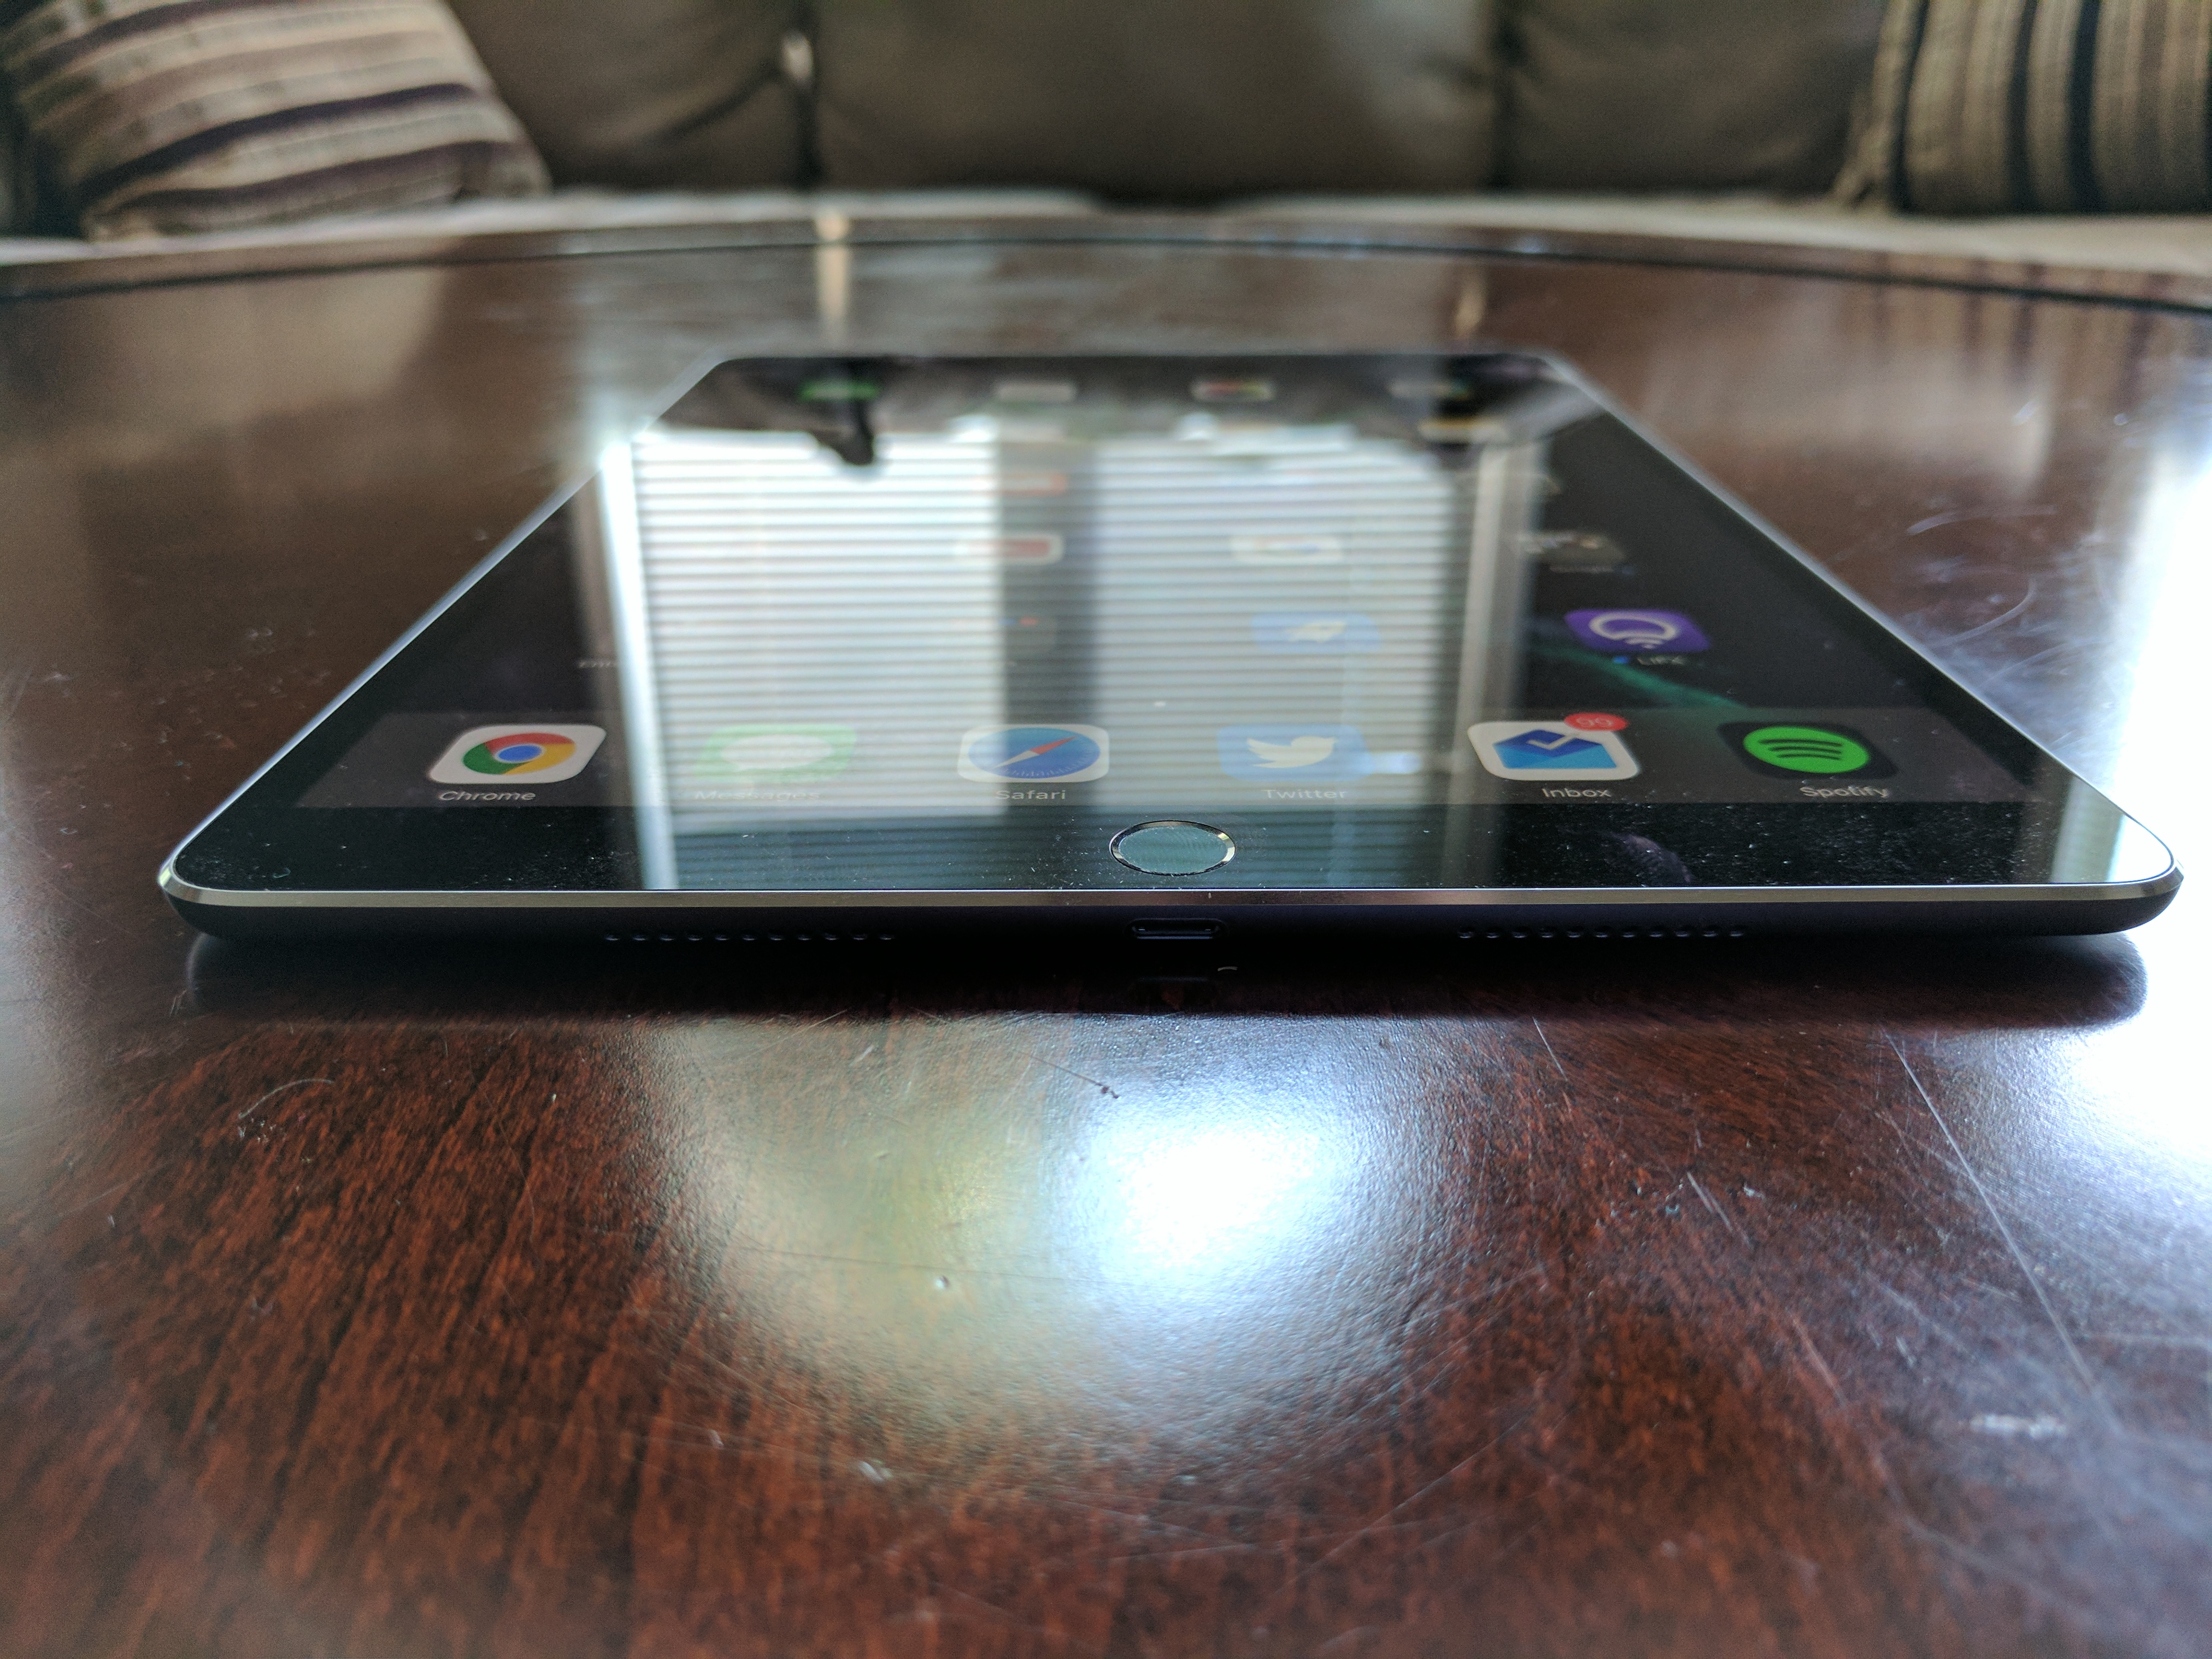 Ipad Pro 105 Review Apples Best Yet Thecanadiantechie 512gb New Tablet Silver Wifi Only In My 129 2015 I Talked About Some Of The Accessories Available For Two Pros Like Smart Cover Keyboard But Alongside